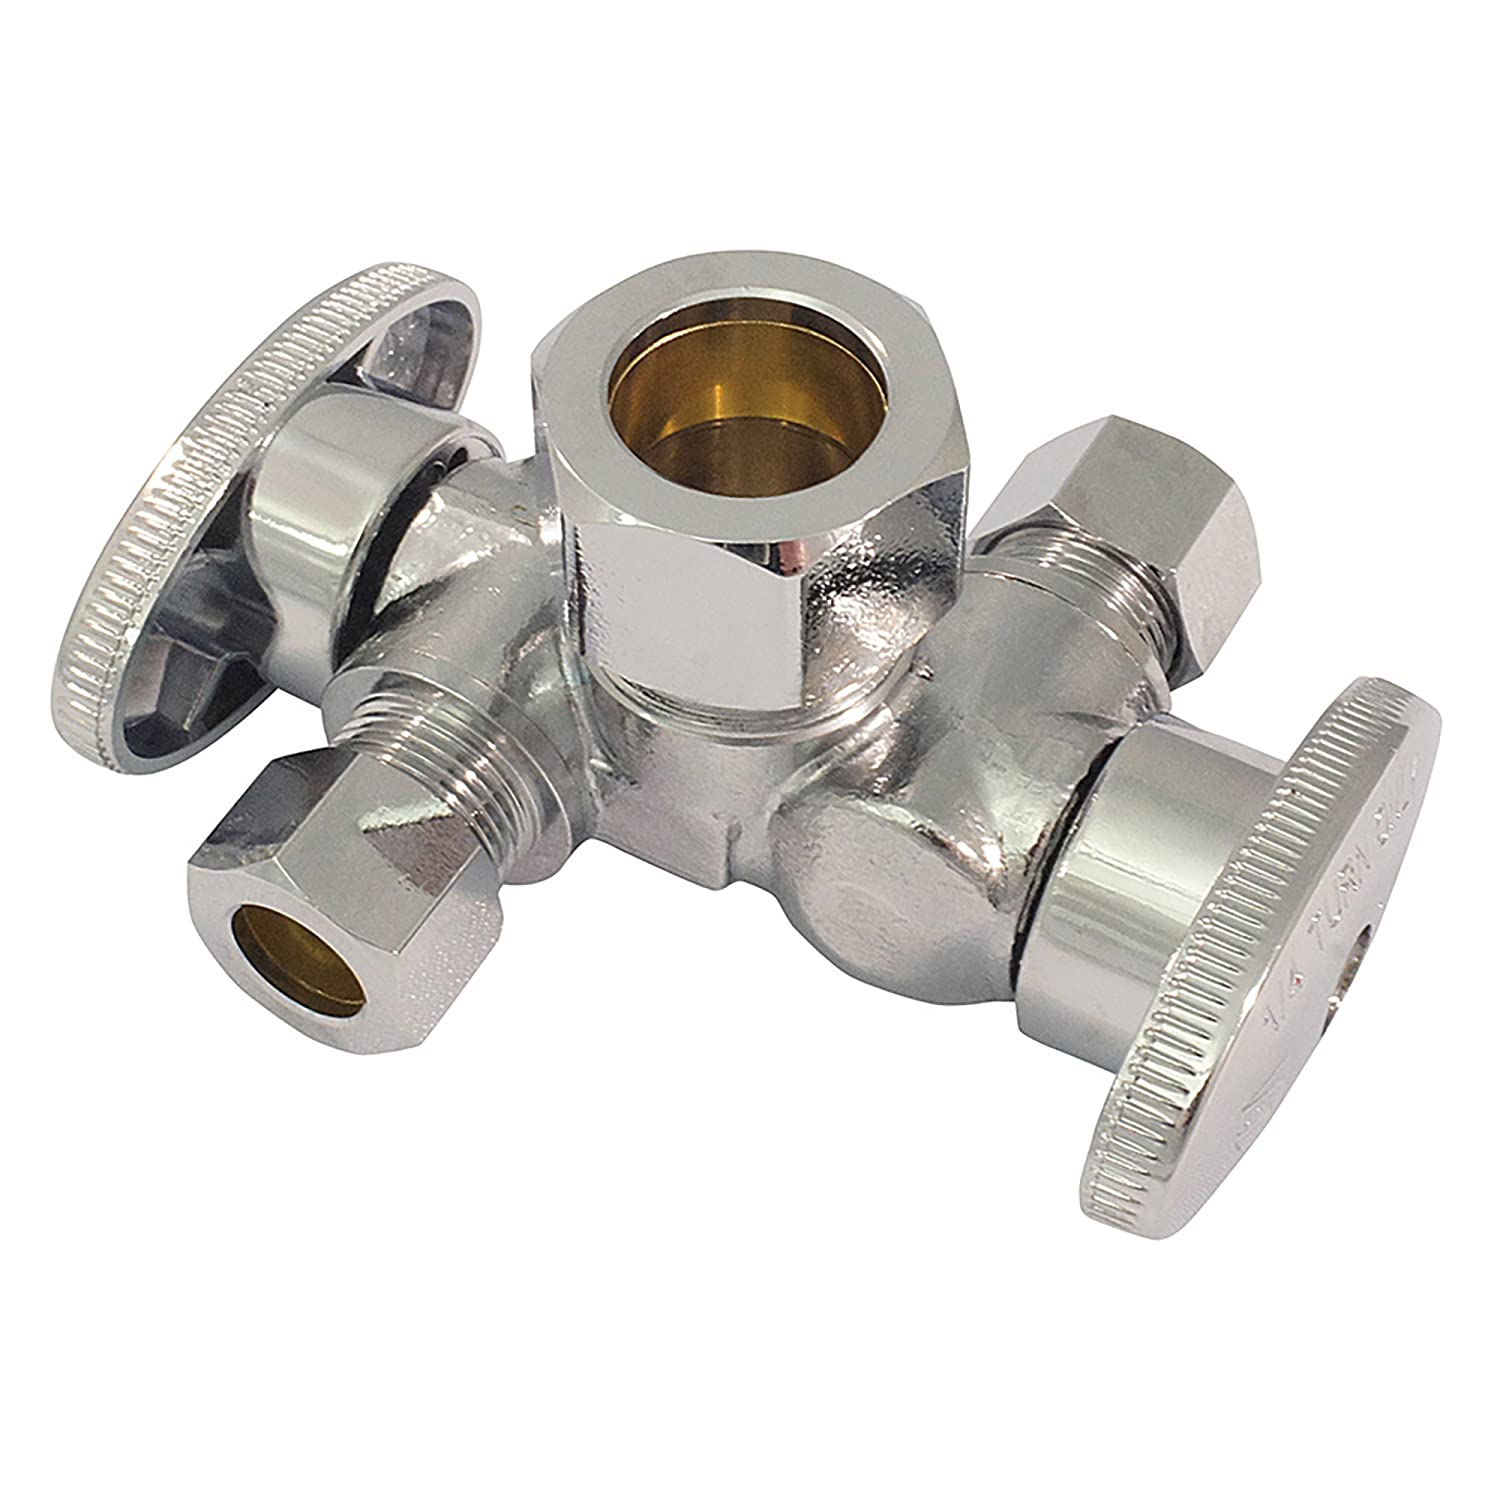 Apollo Valves AFDOSCOMP 1/2-inch x 3/8-inch Dual Outlet Stop Valve